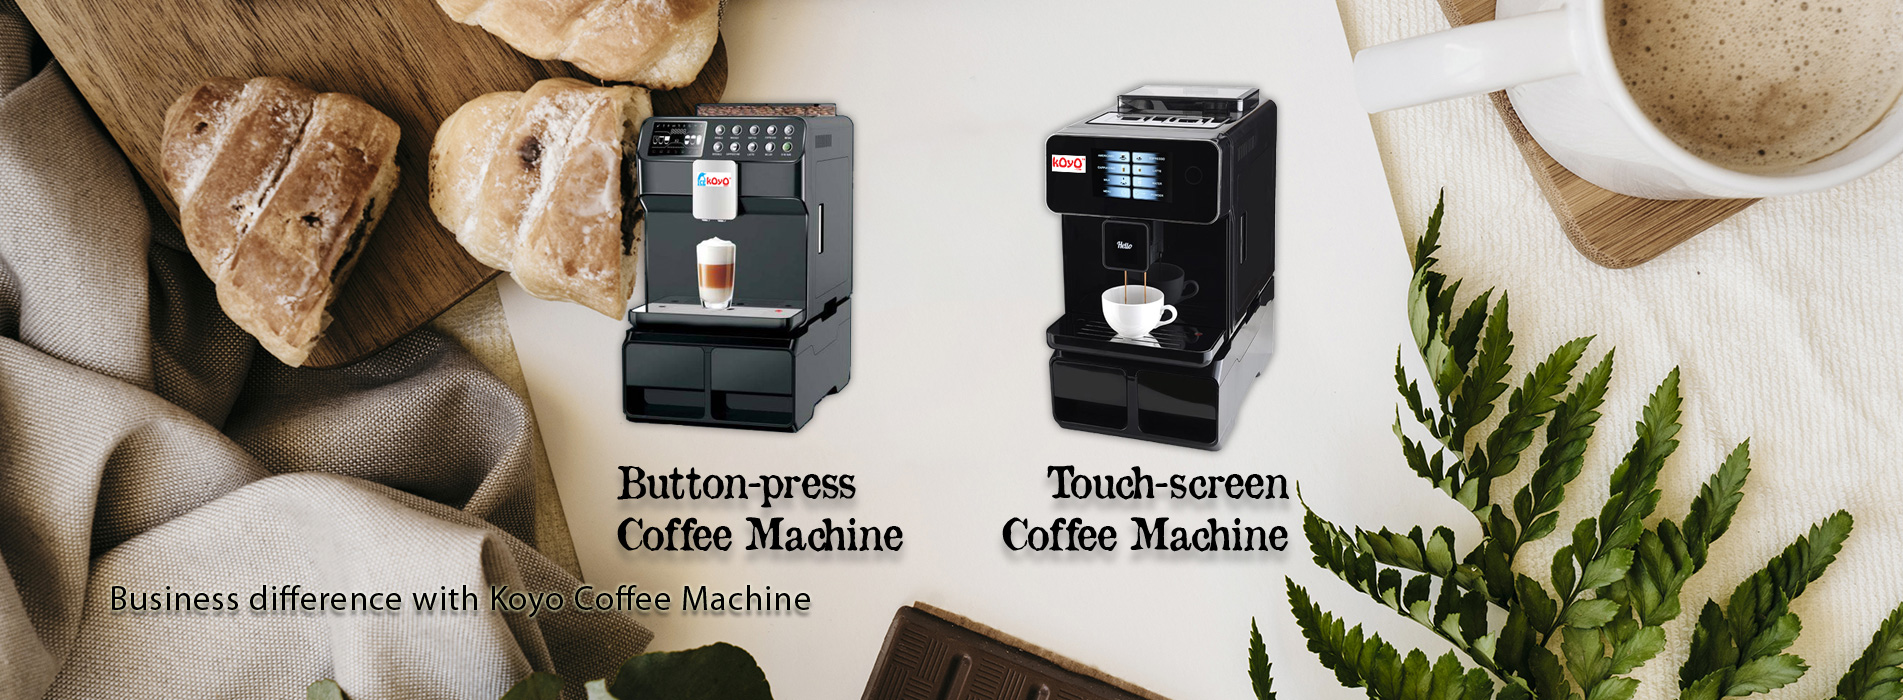 Koyo Coffee Machine Banner